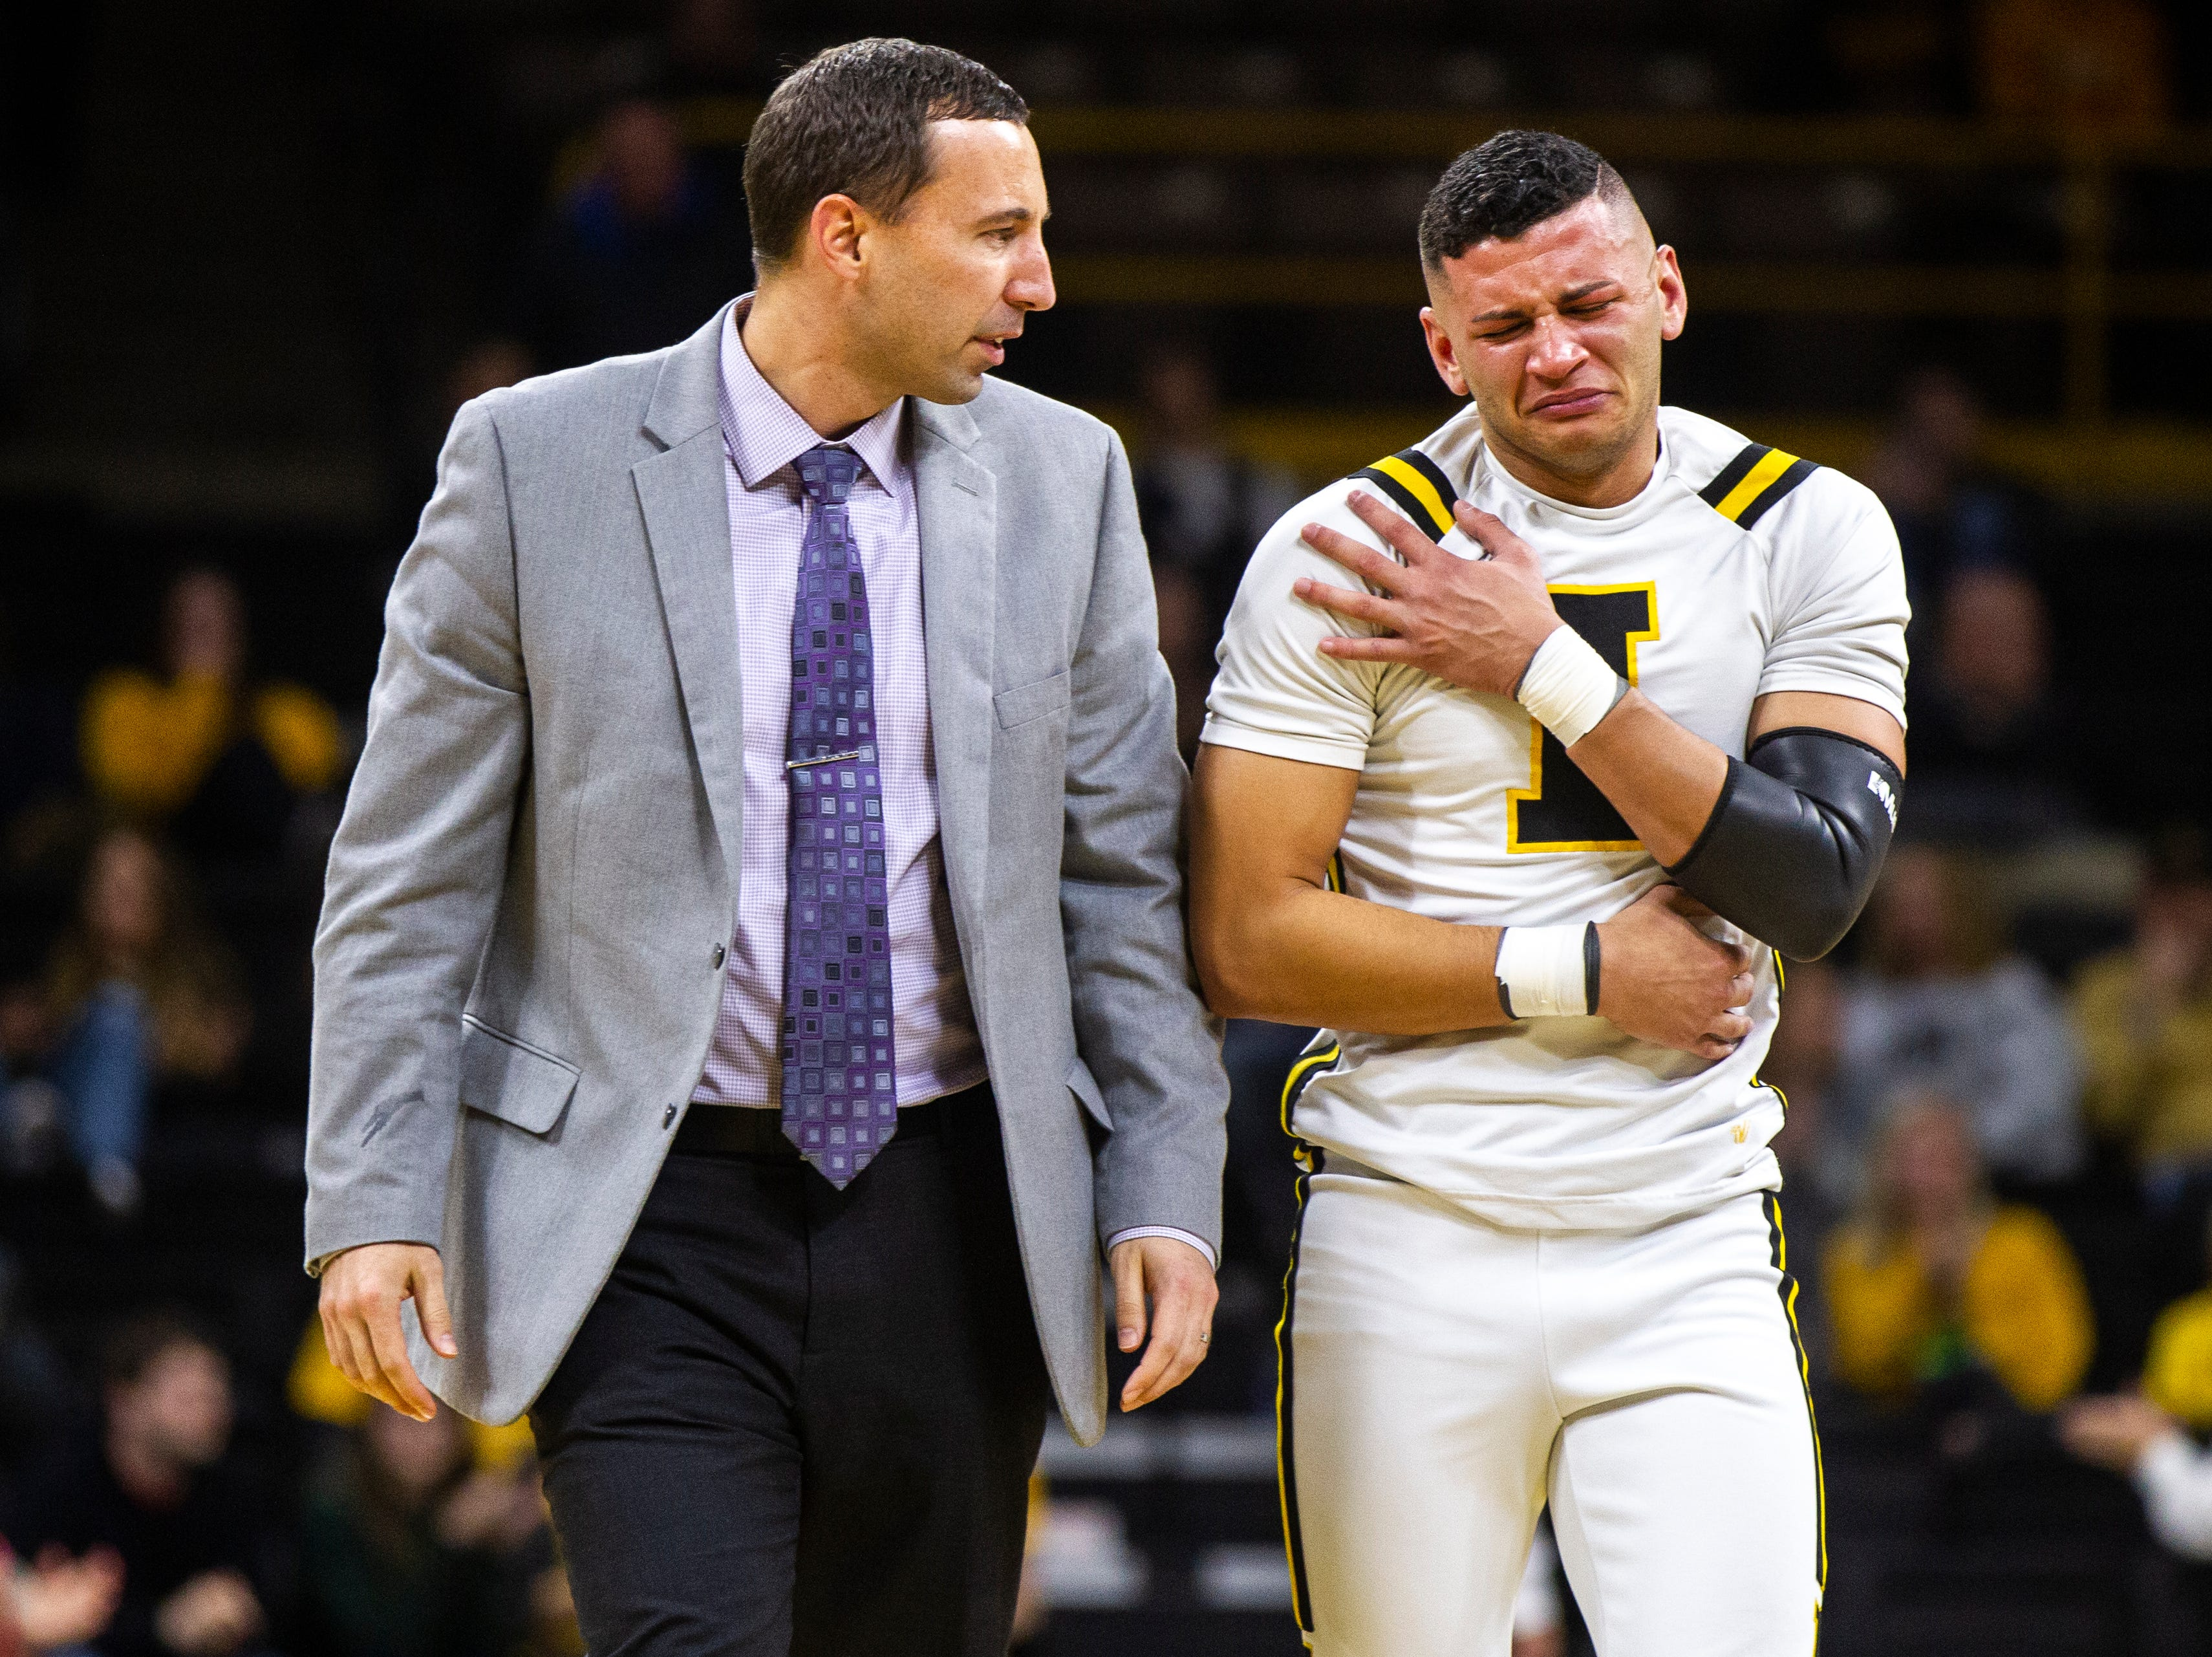 An Iowa cheerleader reaches for his shoulder after taking a fall during a timeout at a NCAA men's basketball game on Saturday, Dec. 22, 2018, at Carver-Hawkeye Arena in Iowa City.